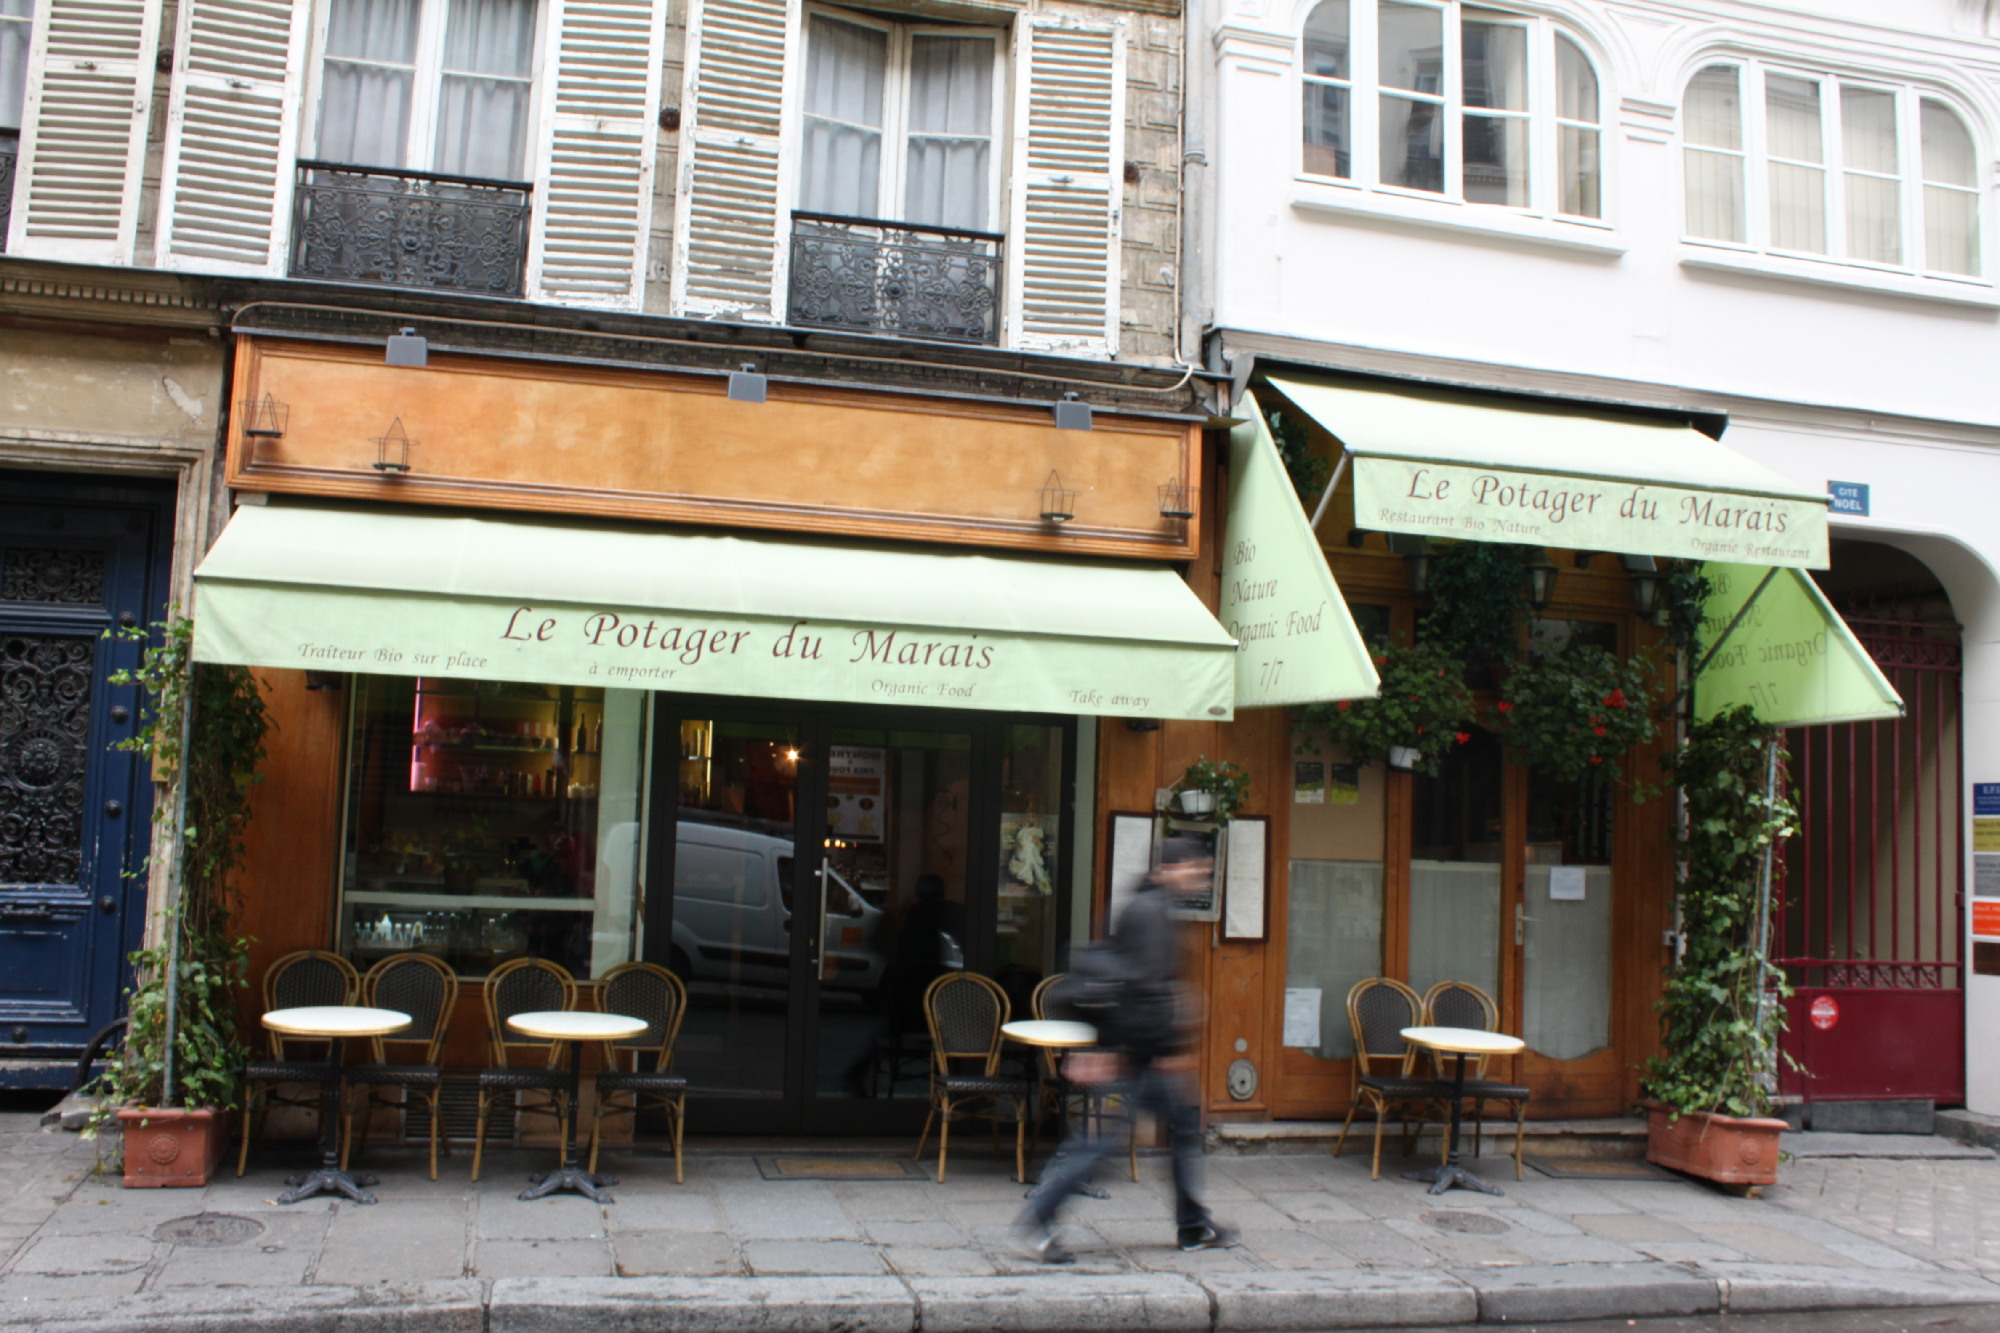 Restaurants in the Marais Paris   Best restaurants in Marais   Time     Restaurants in the Marais Paris   Best restaurants in Marais   Time Out  Paris